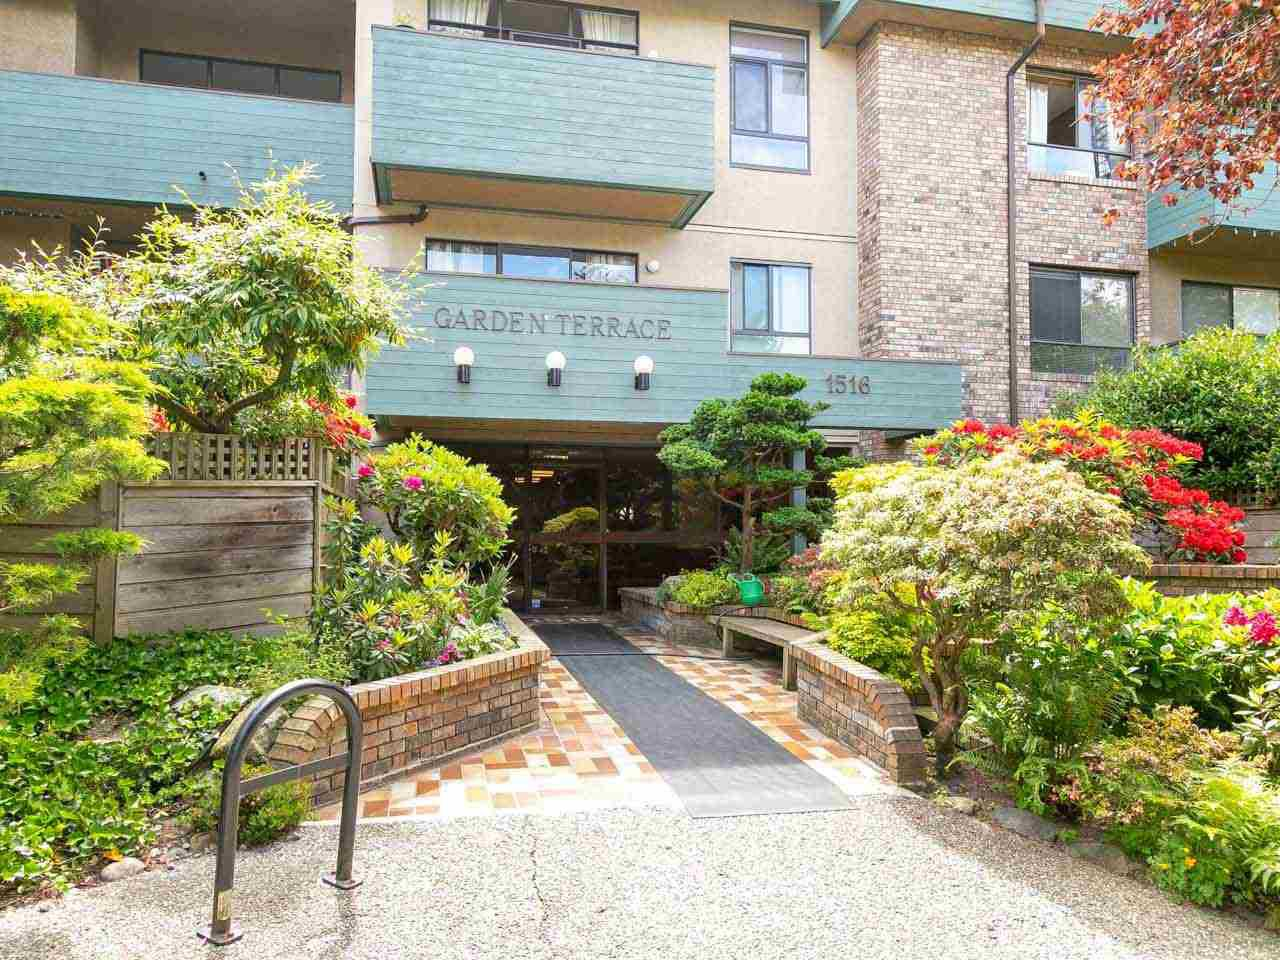 "Photo 1: Photos: 104 1516 CHARLES Street in Vancouver: Grandview VE Condo for sale in ""GARDEN TERRACE"" (Vancouver East)  : MLS®# R2295886"